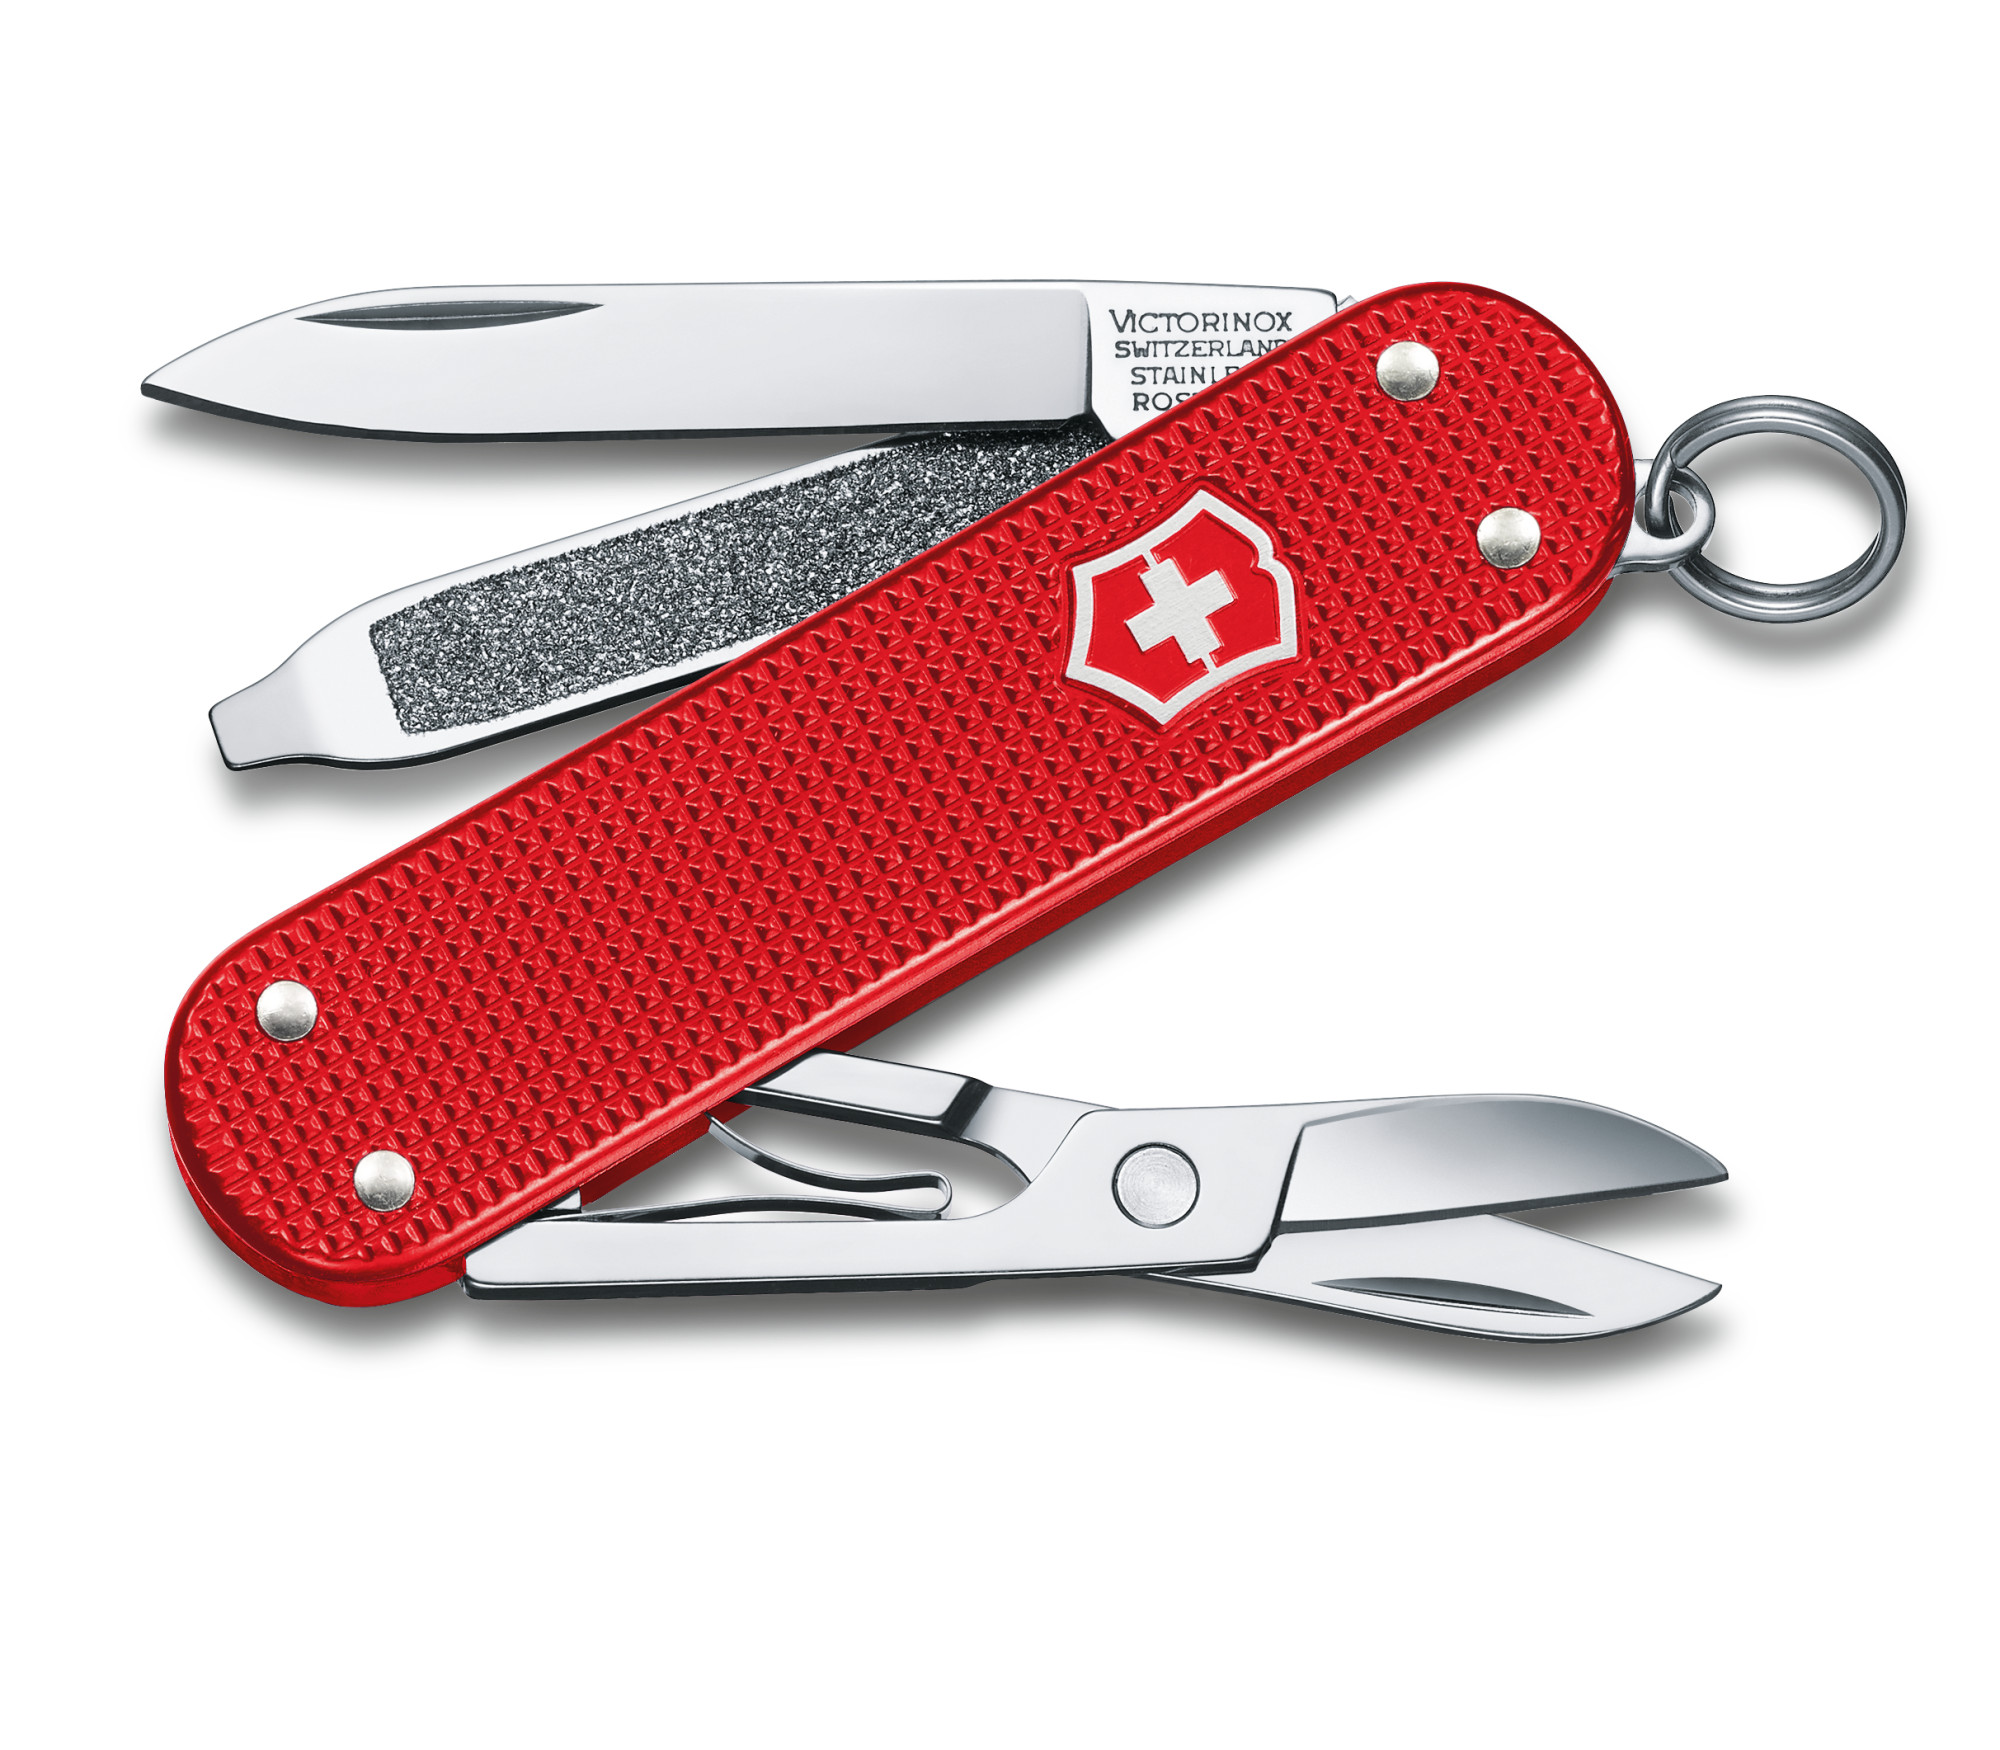 Victorinox Swiss Army Classic SD Alox Berry Red Limited Edition 2018 Multi-Tool, 2.25 inch Closed